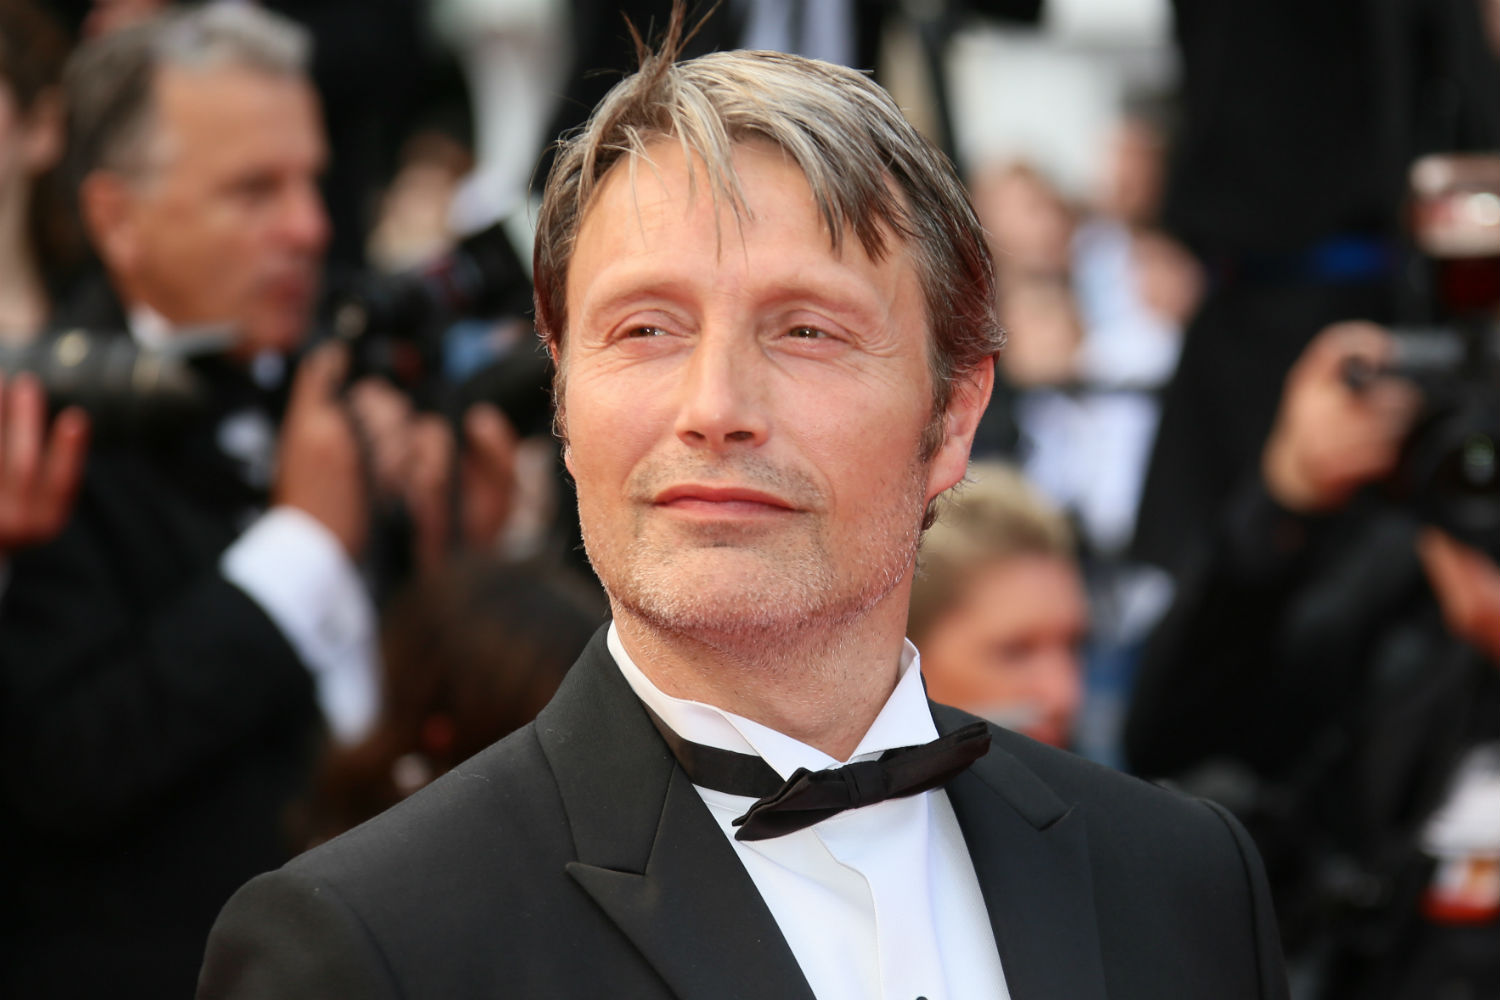 Marvel's Doctor Strange Cast Might Include Hannibal's Mads